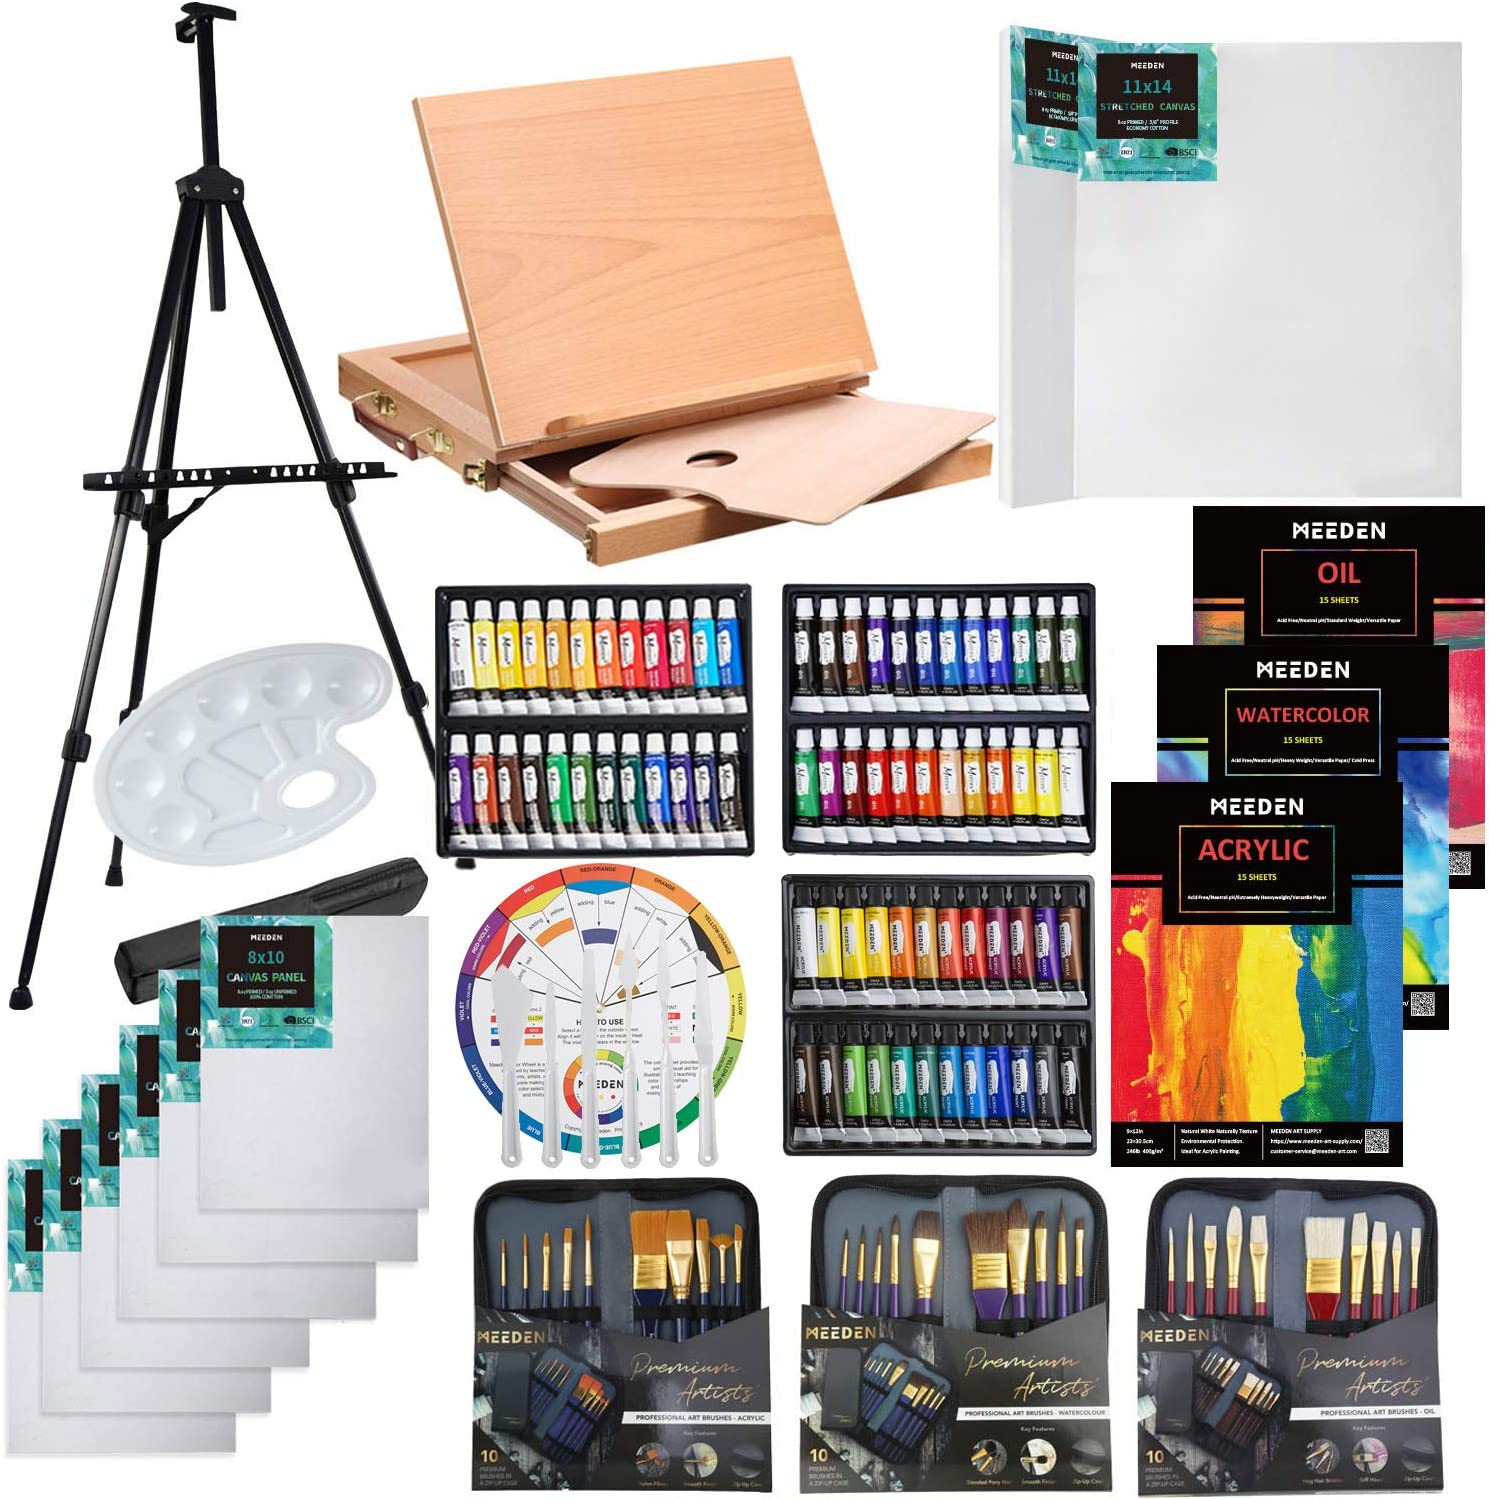 MEEDEN 124-Piece Deluxe Artist Painting Set with Aluminum and Solid Beech Wood Easel, Paint, Stretched Canvas and Accessories, Great Gift for Artists, Beginner & Adults